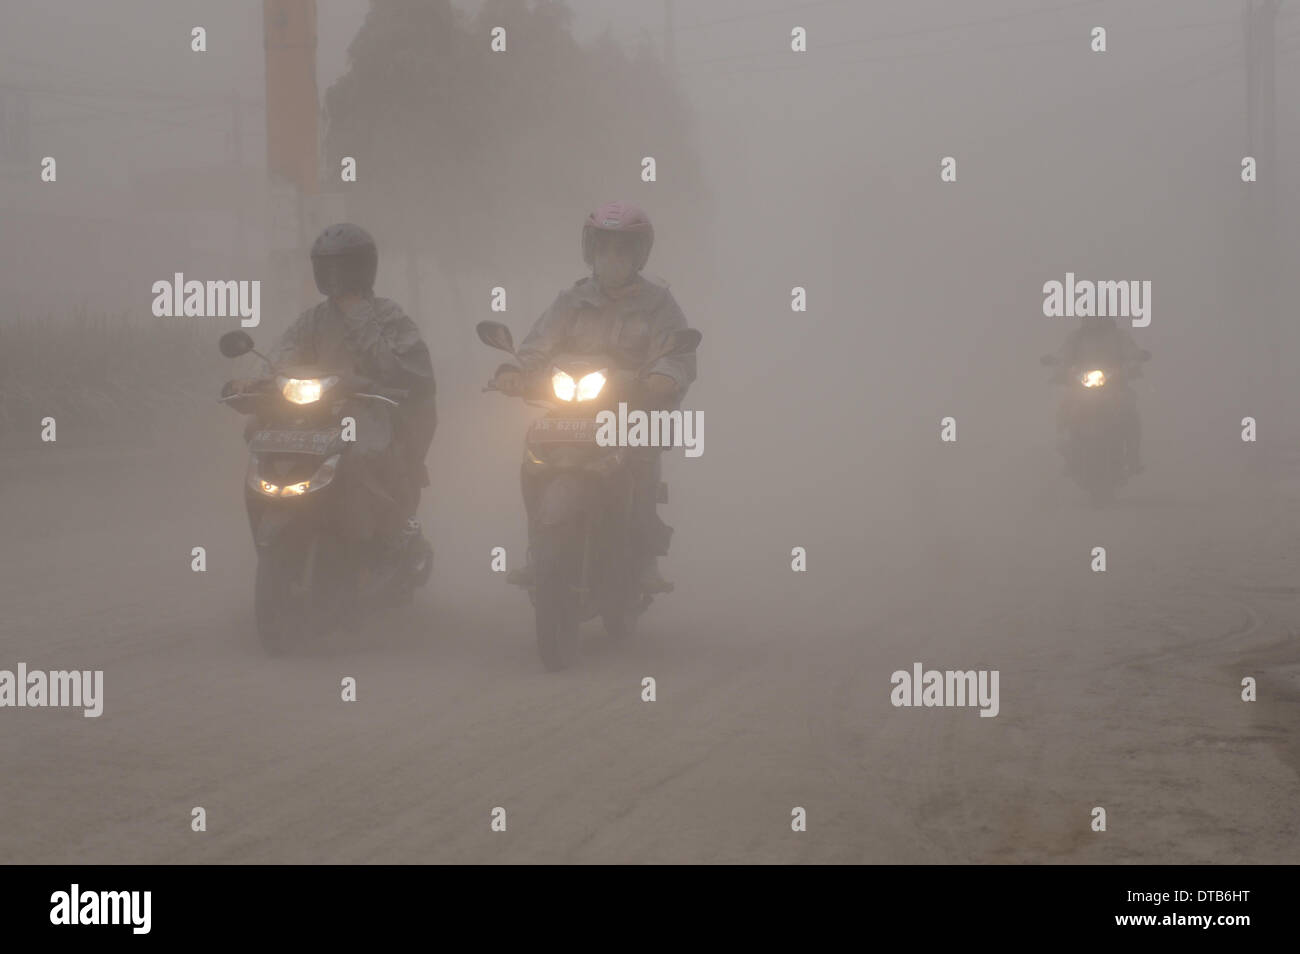 Yogyakarta, Indonesia. 14th Feb, 2014. Motorcyclists ride on an ash-covered road as rains of gravel and sand hit Yogyakarta province, Indonesia, Feb. 14, 2014. Mount Kelud in East Java, Indonesia, started eruption at 22:50 p.m. Jakarta time on Thursday, forcing thousands of residence living within 10 kilometers from the crater to evacuate, Umar Rosadi, a volcanologist at the national volcanology agency, told Xinhua by phone. Credit: Xinhua/Veri Sanovri/Alamy Live News - Stock Image